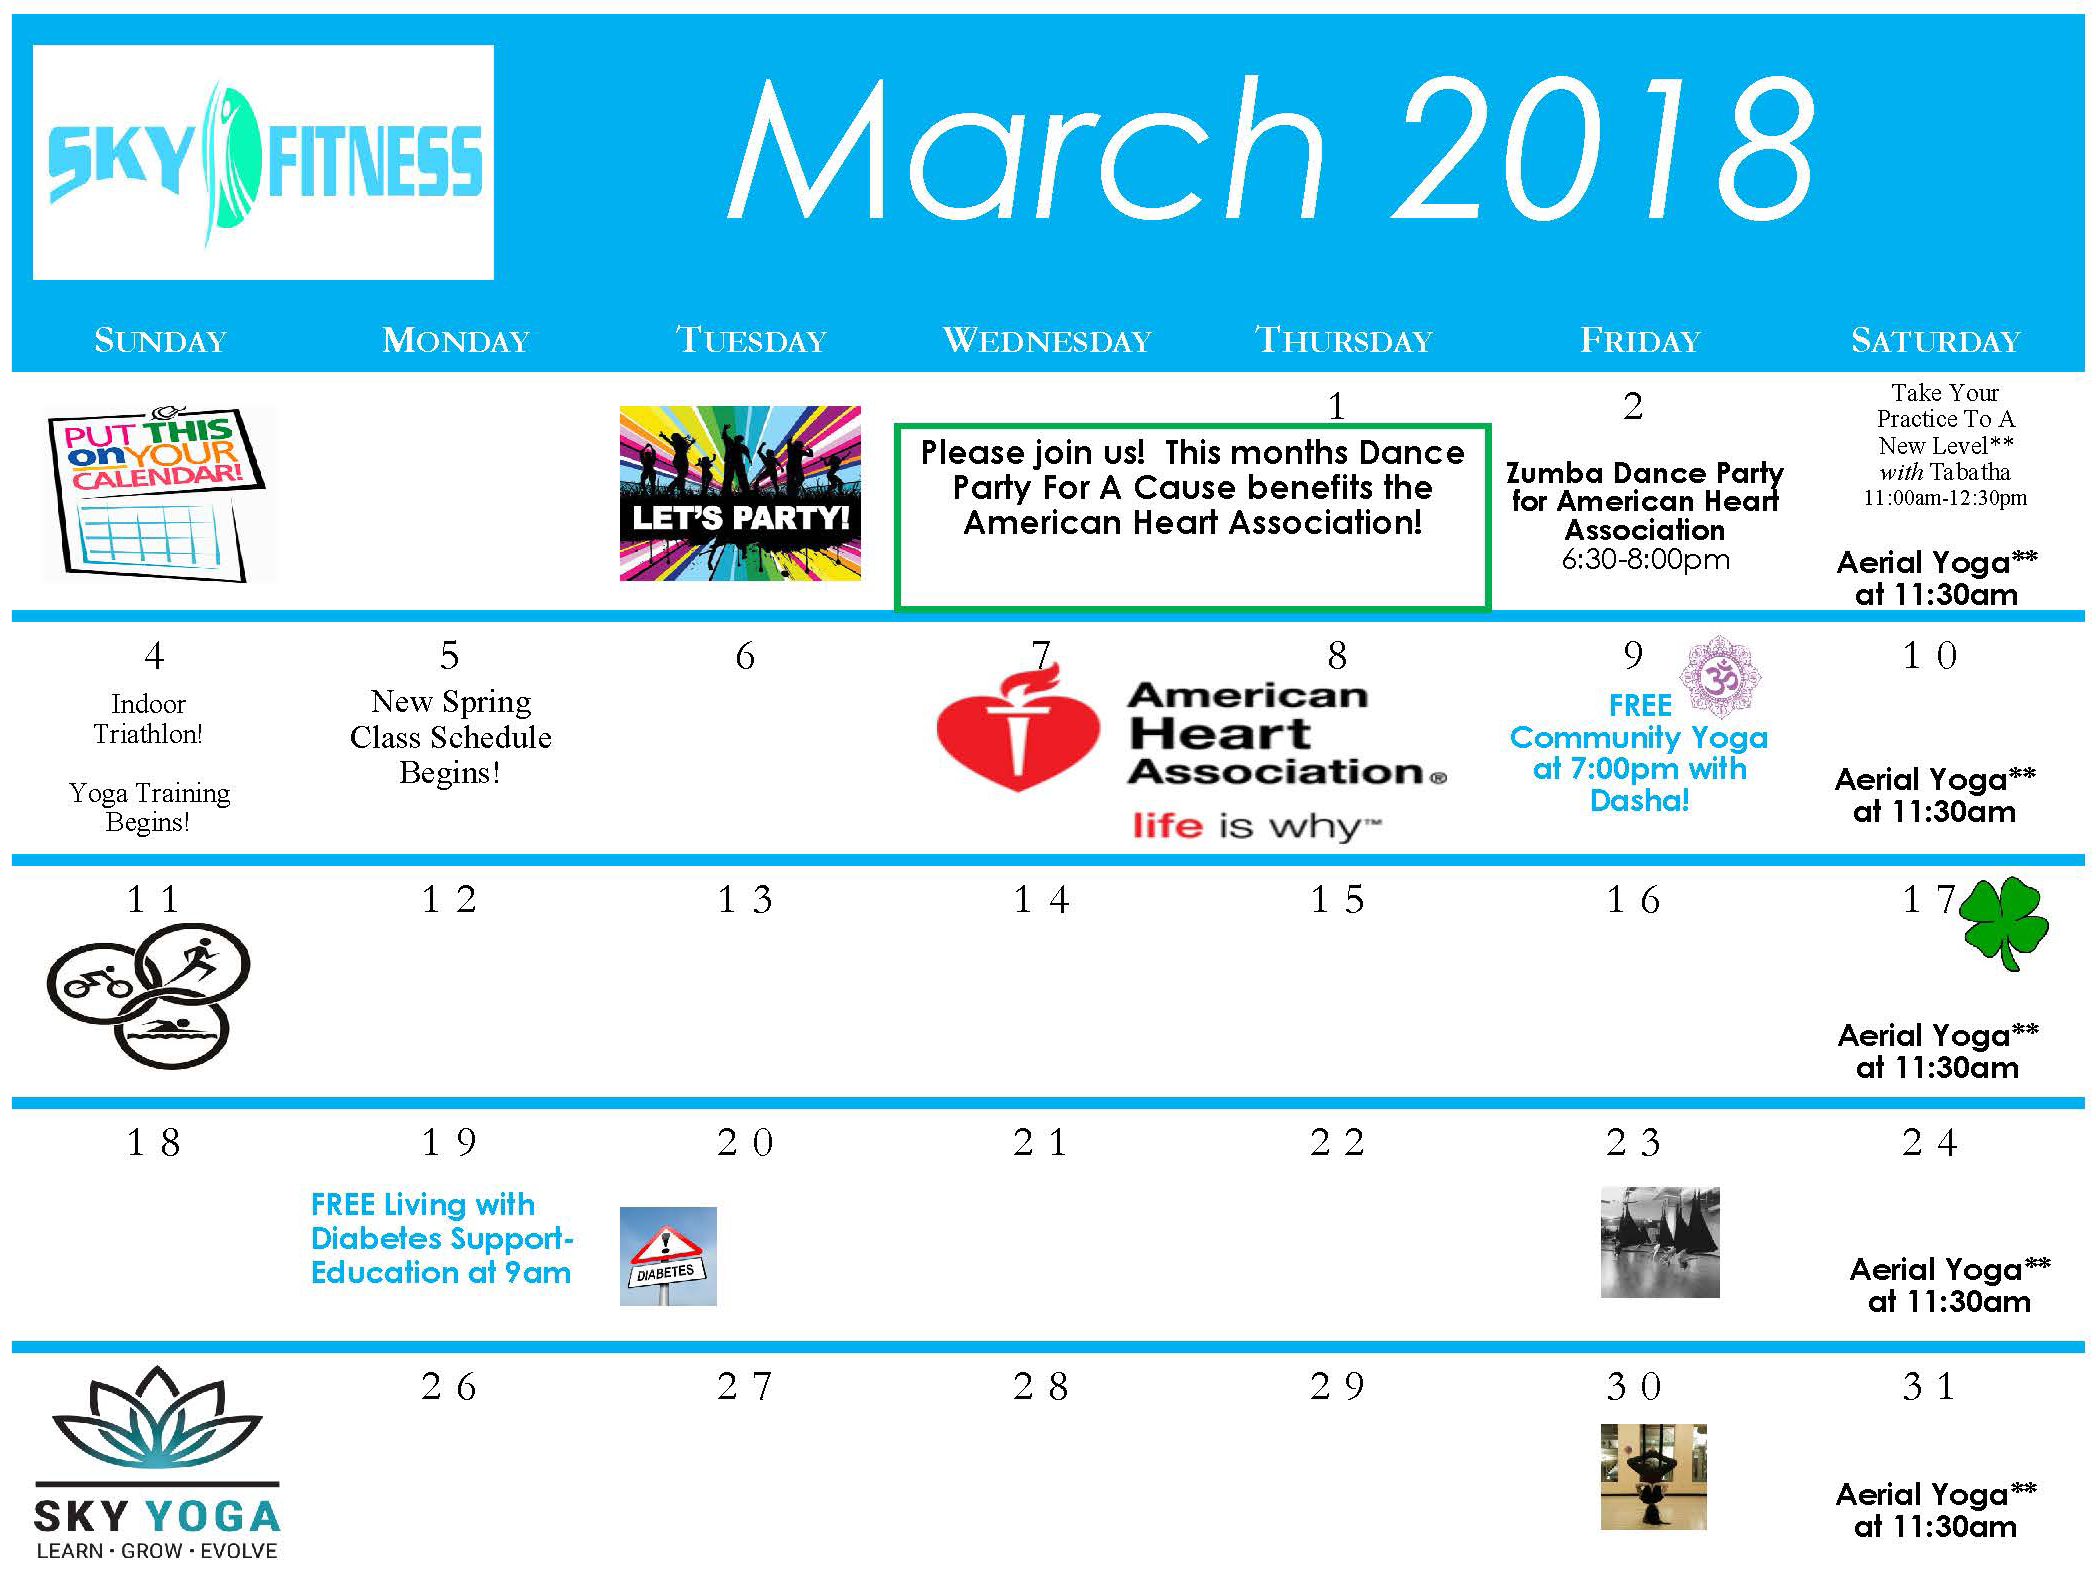 March-2018-Calendar - Sky Fitness Chicago